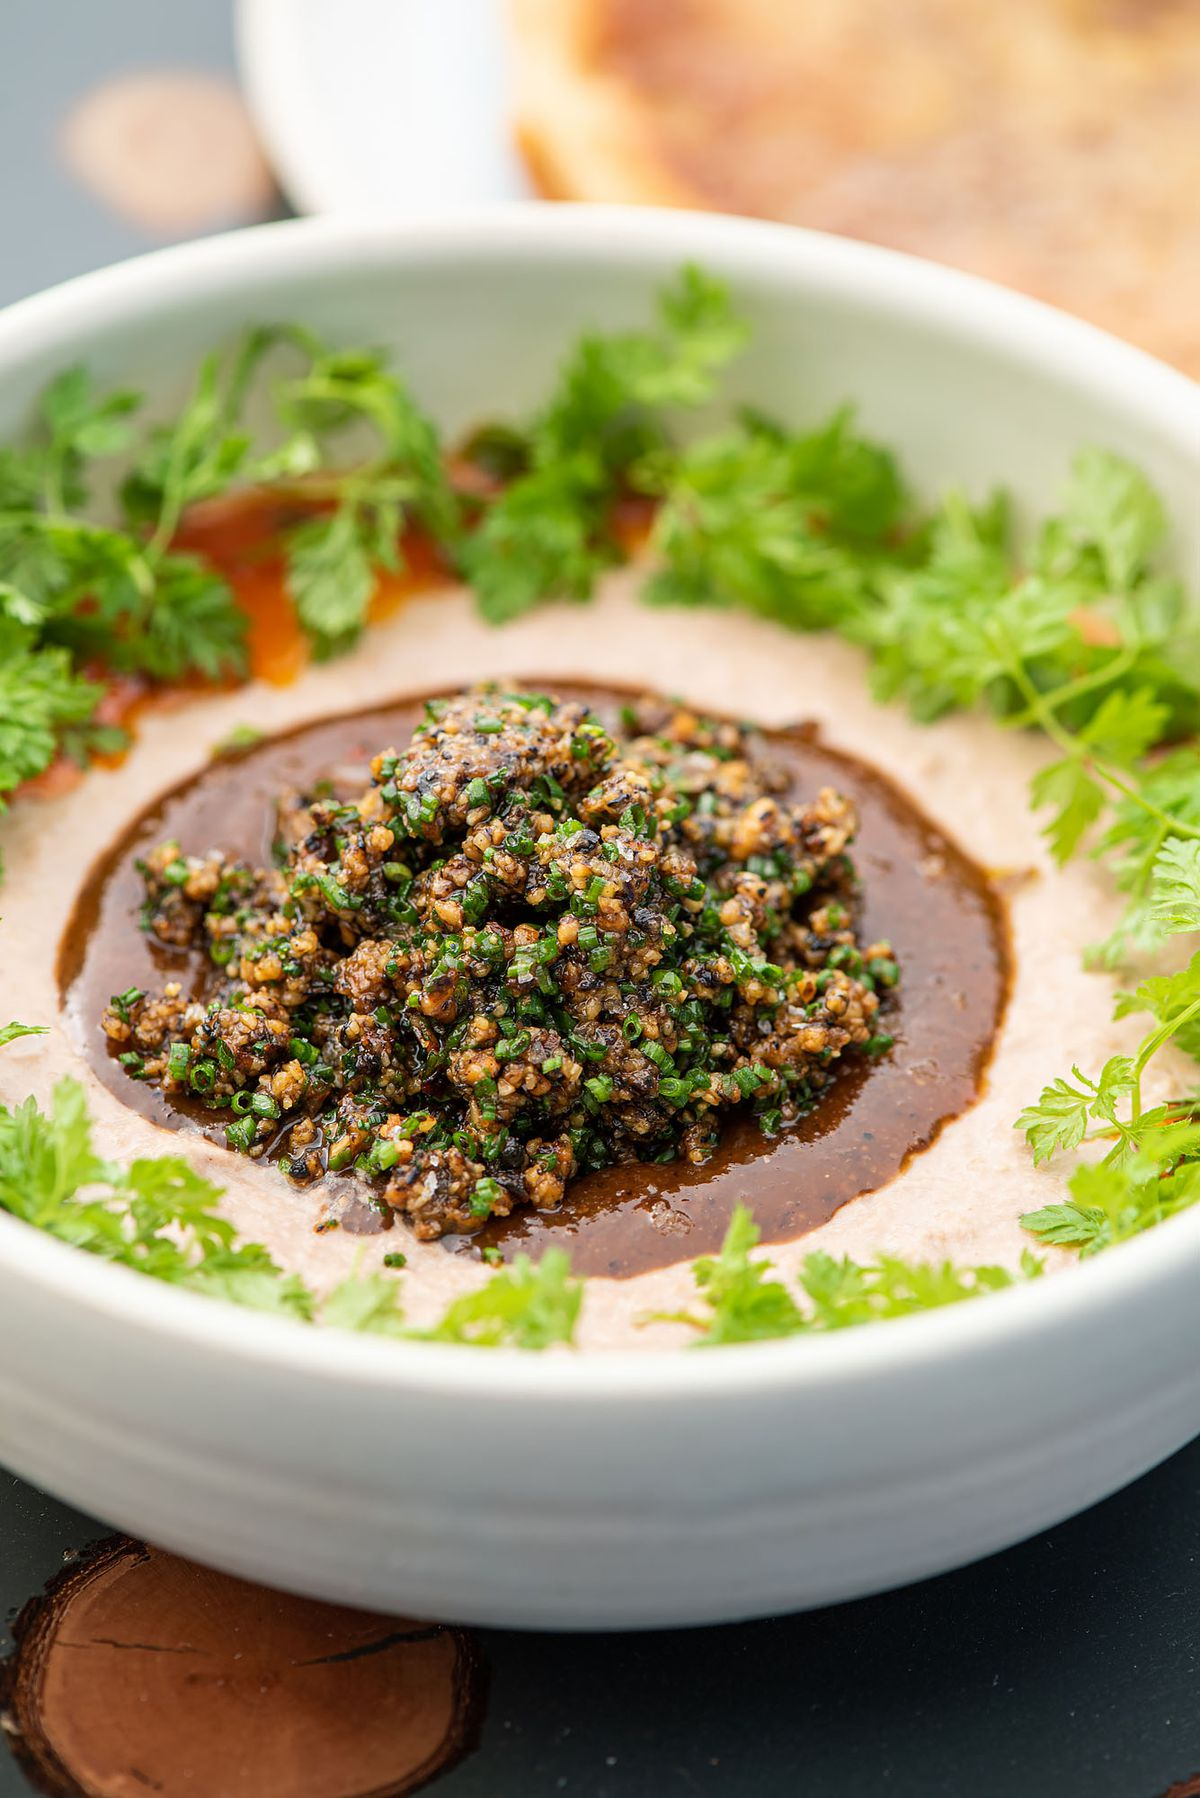 Whipped eggplant spread in a white bowl.